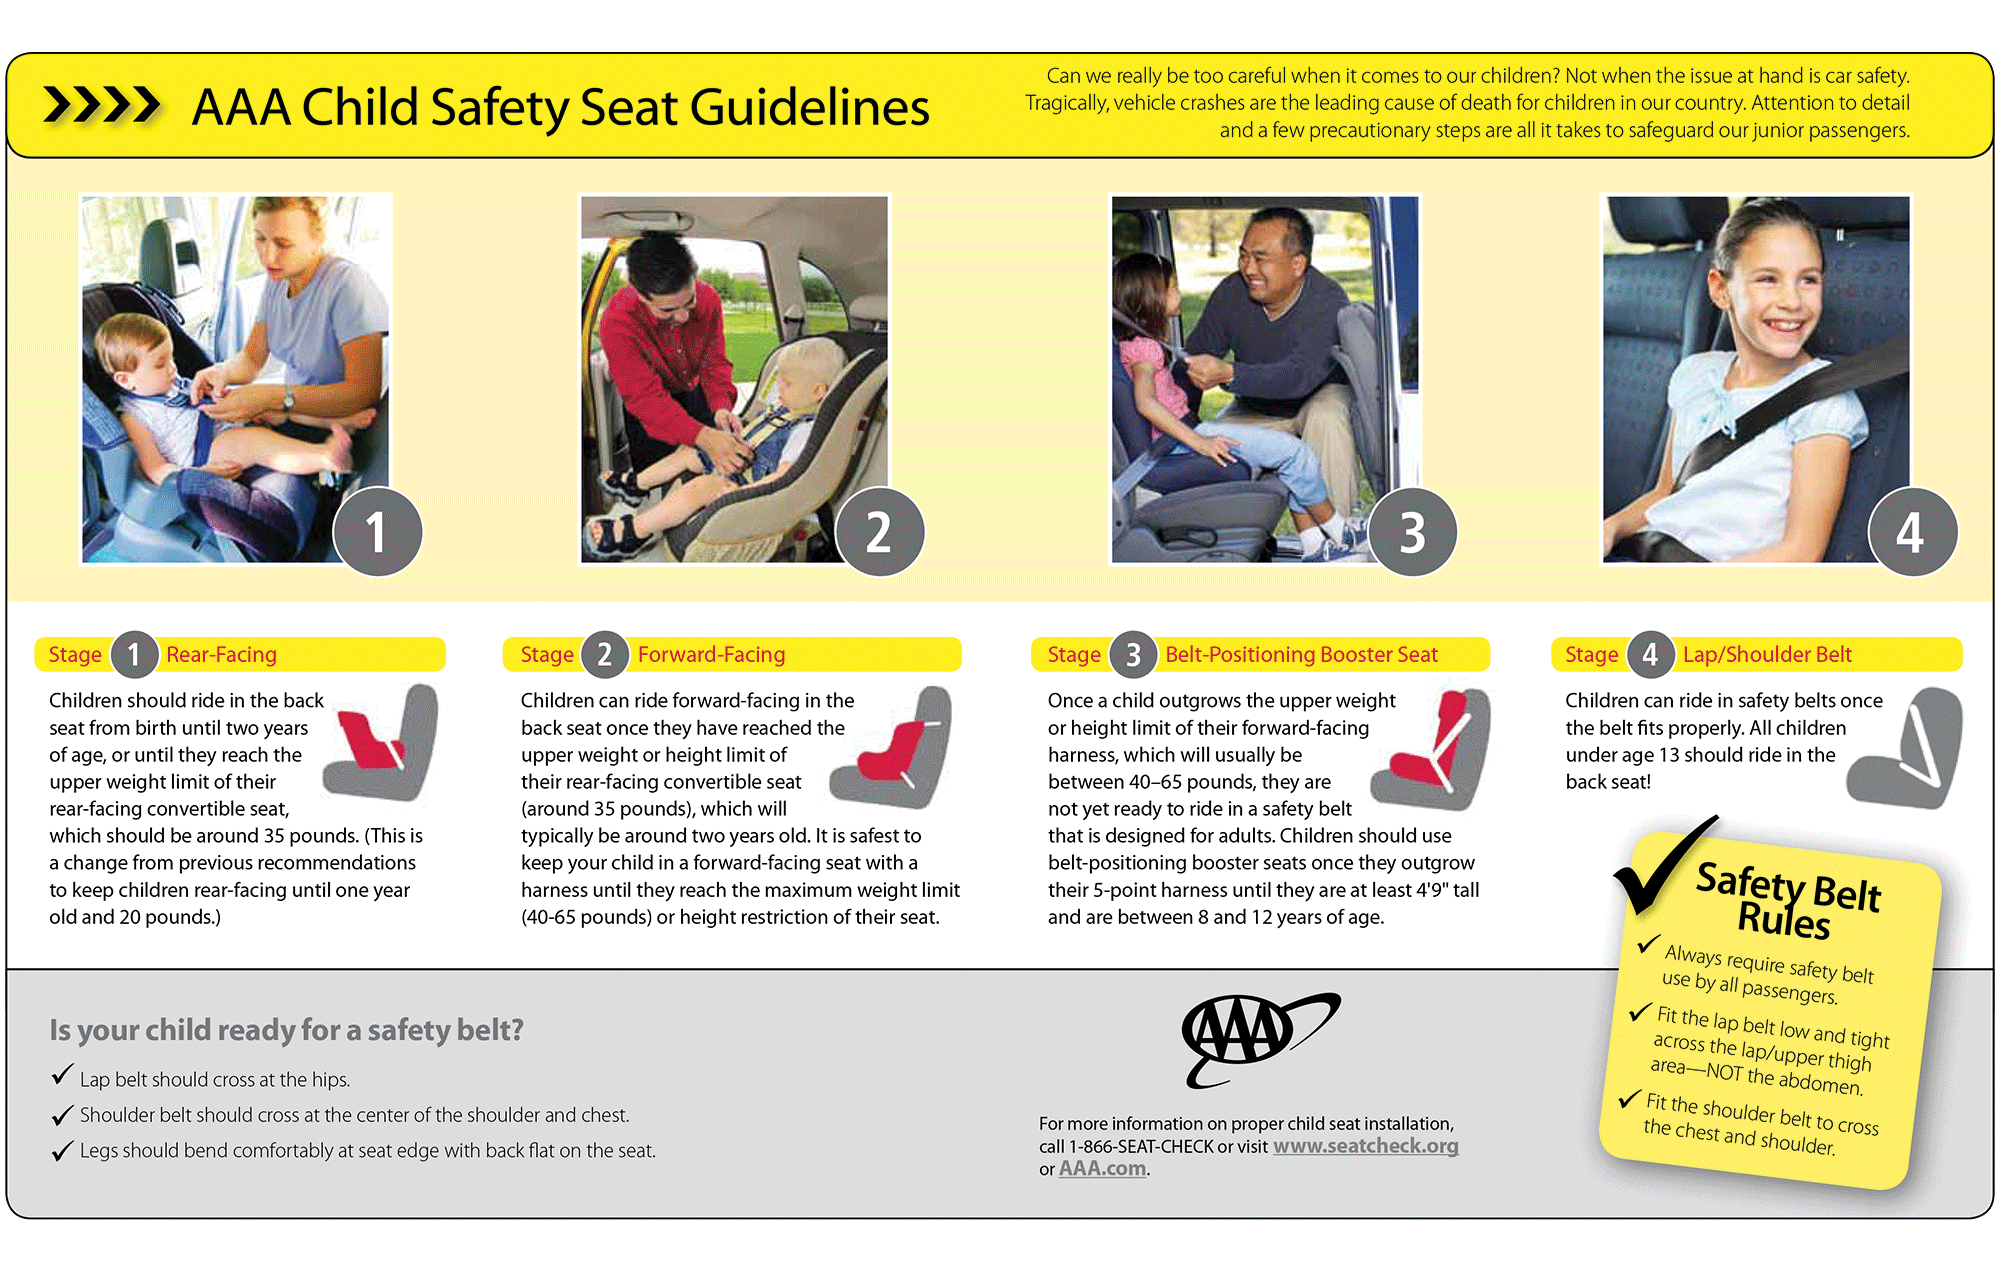 Child_Safety_Seat_Guidelines_LawsOPT